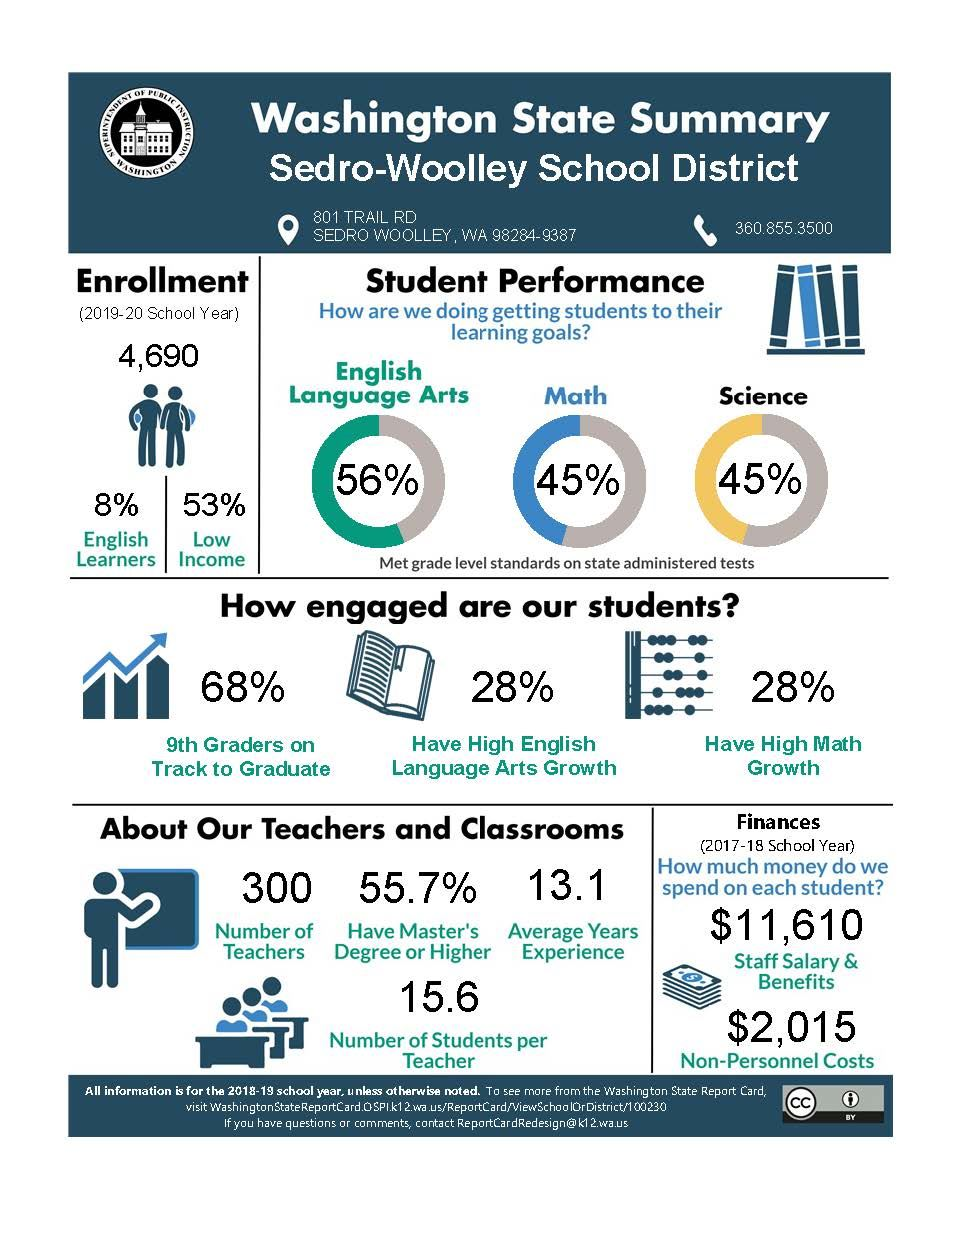 Summary Report Card for the Sedro-Woolley School District